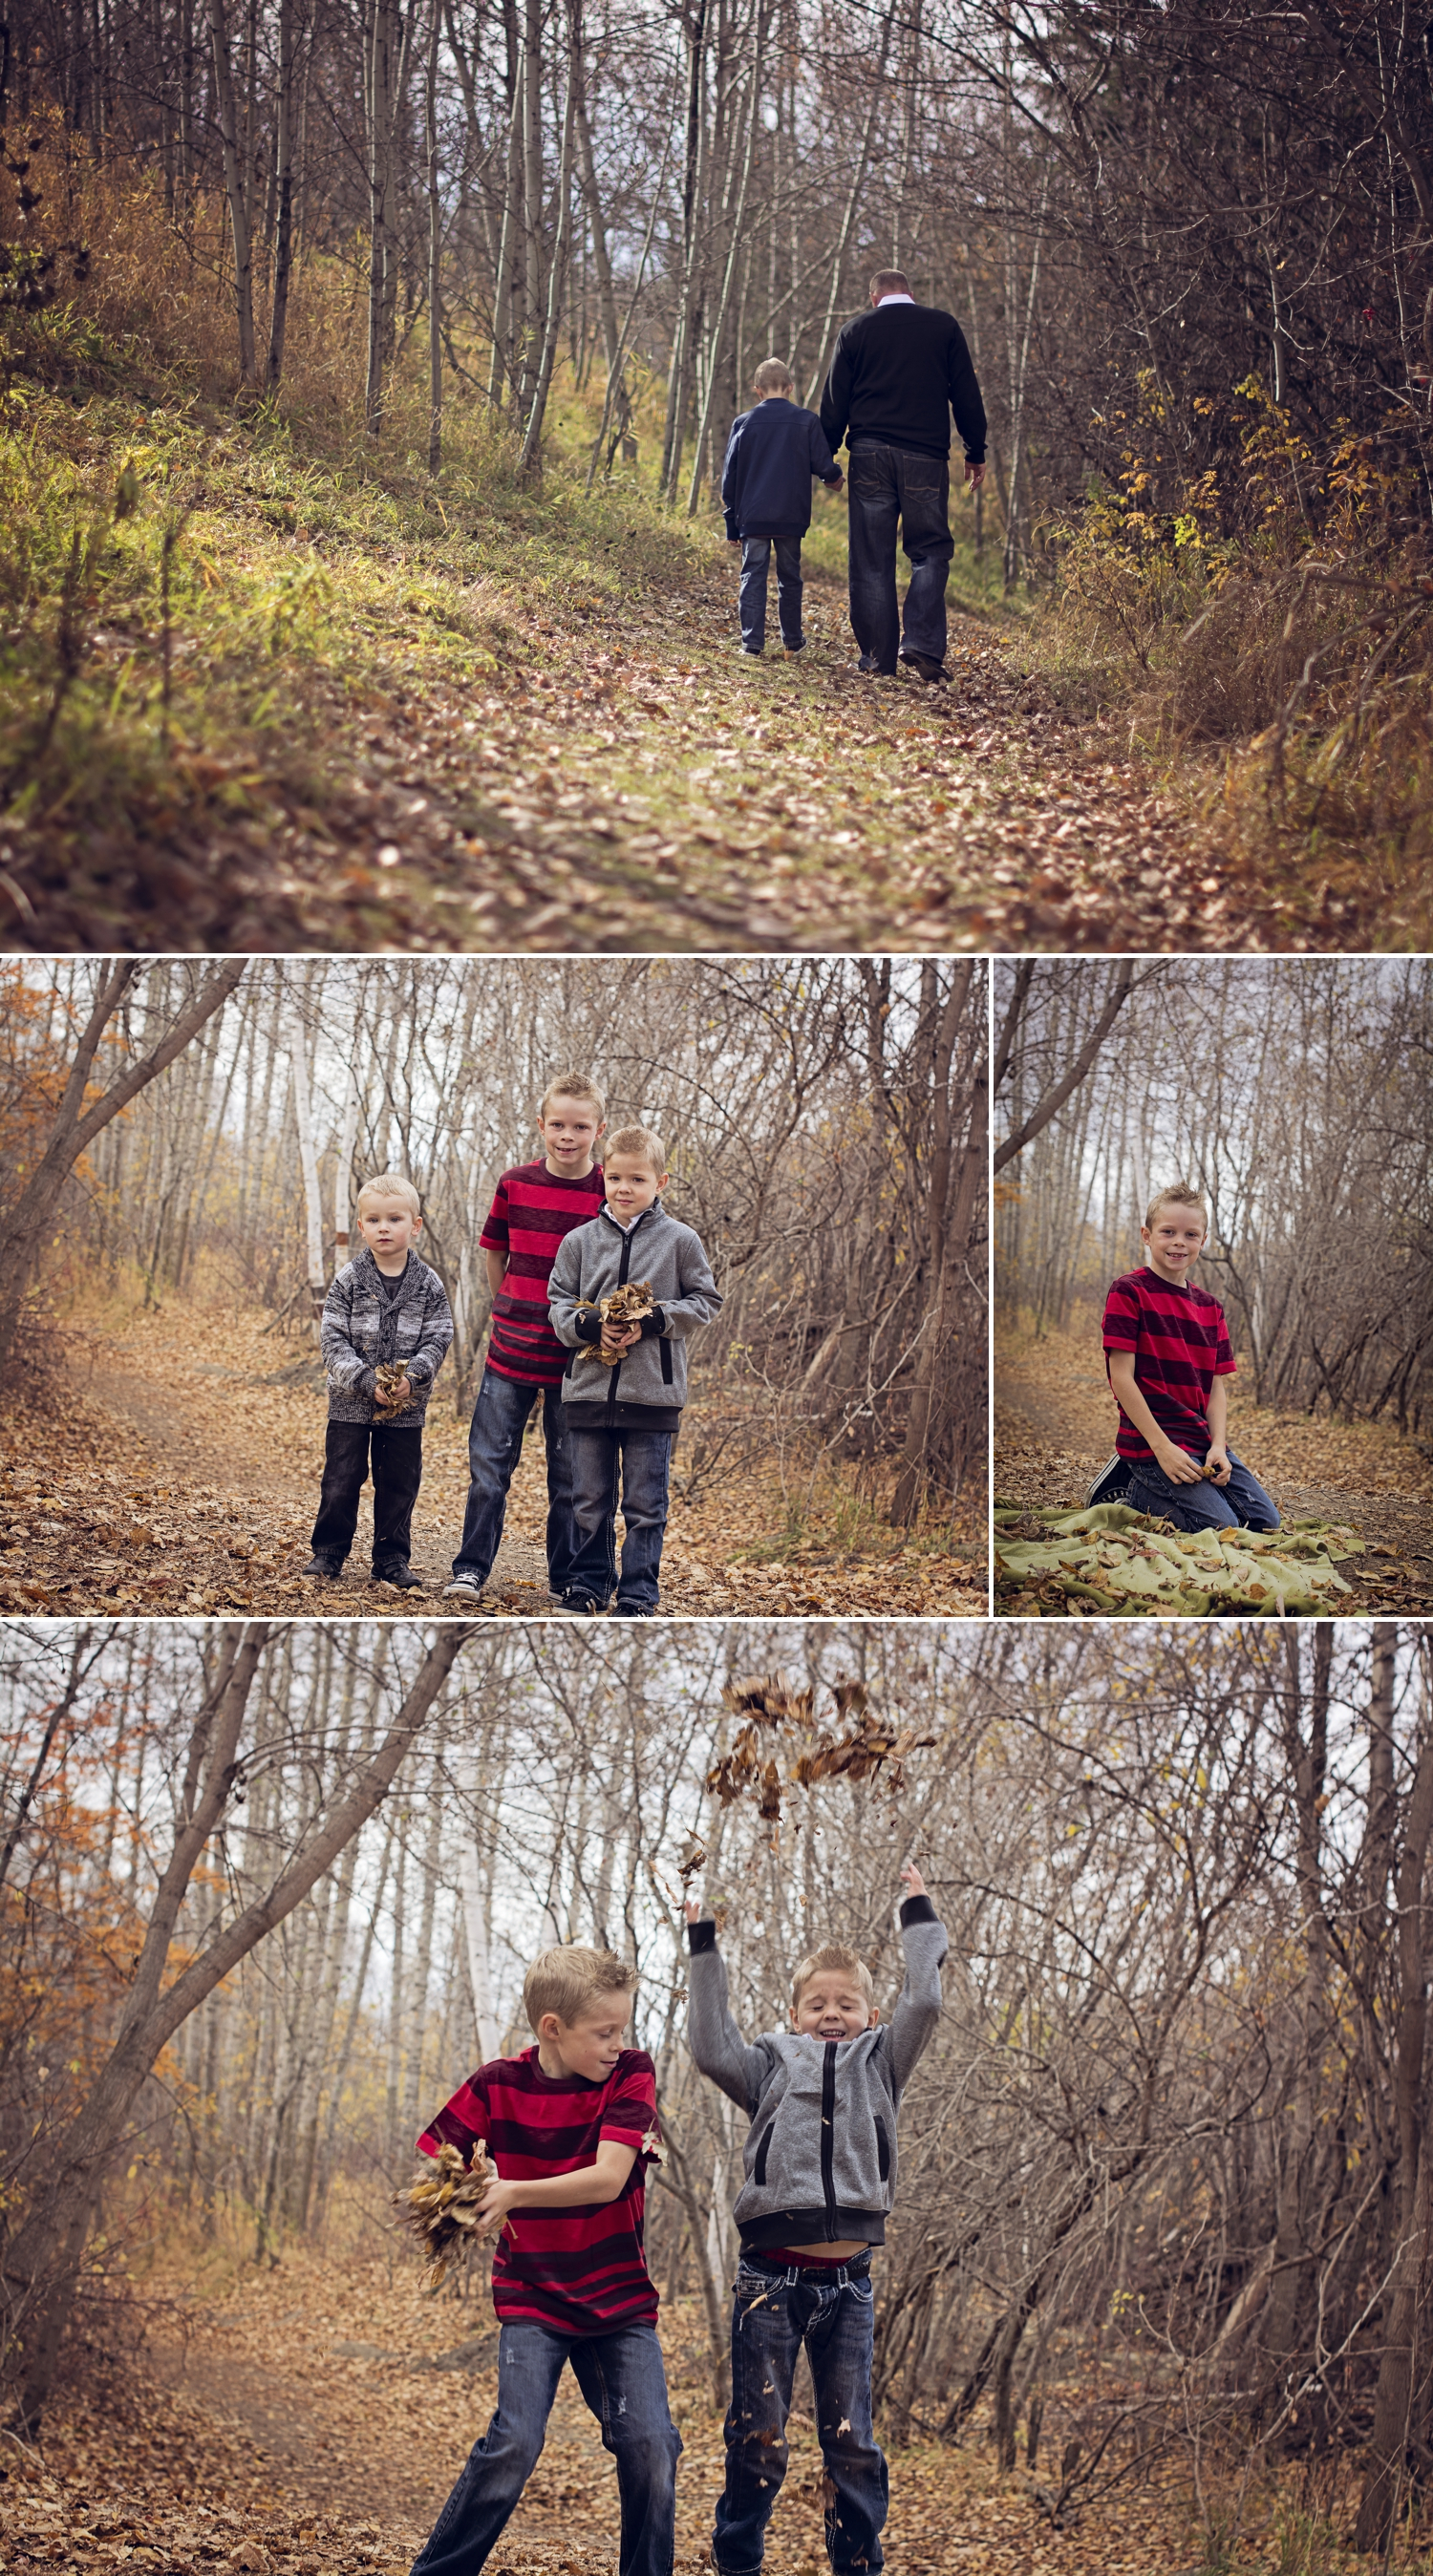 Family Lifestyle Photography by Friday Design + Photography from Edmonton, Alberta, Canada.